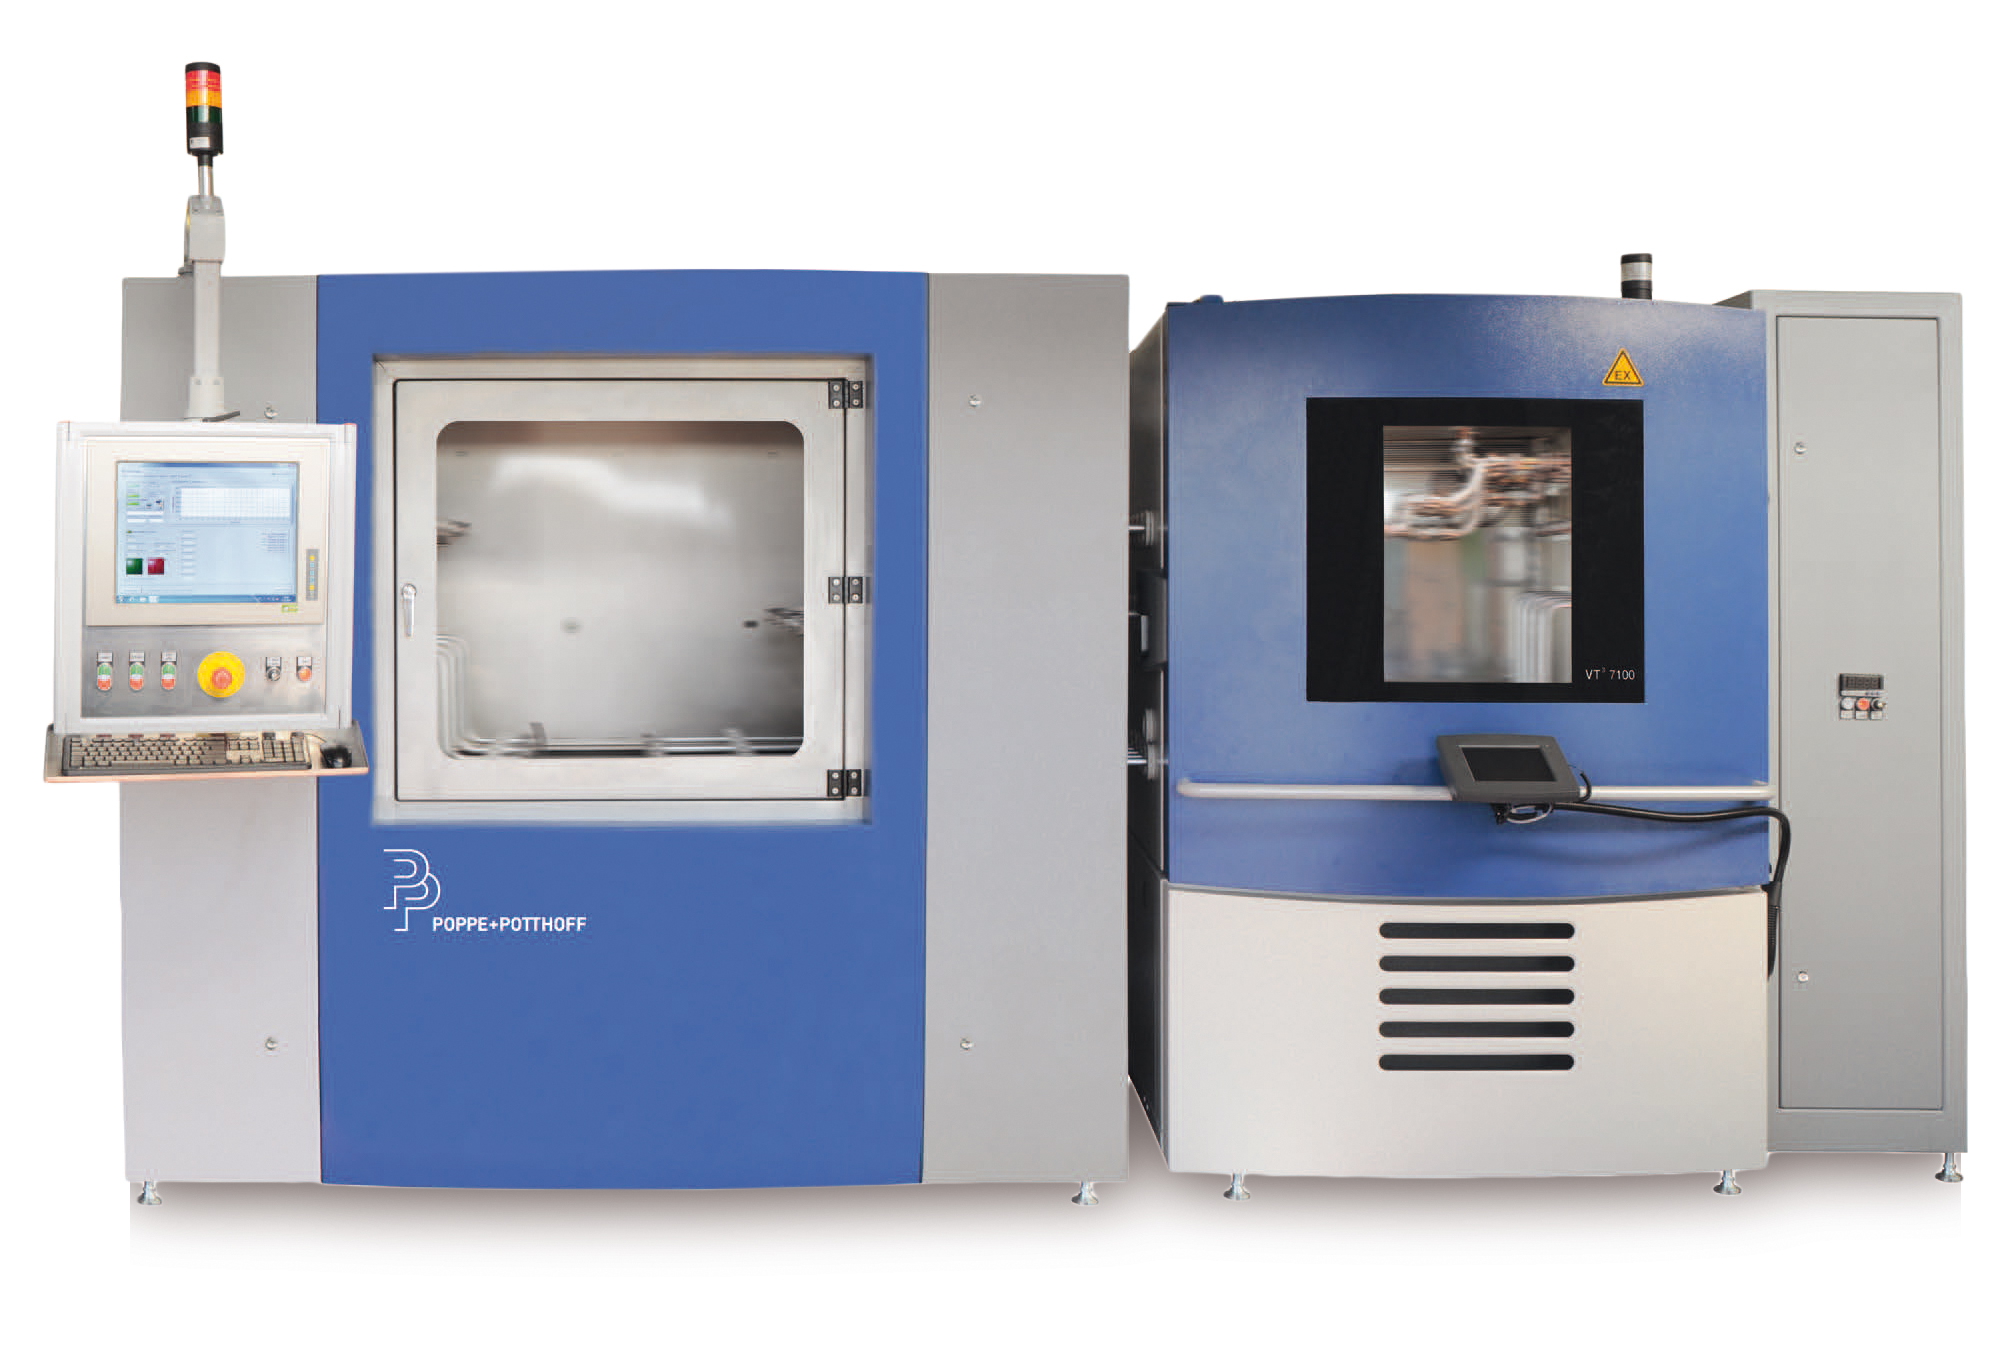 Burst Pressure Test Bench and Pressure Pulsation Test Stand with heated media and environmental chamber for ambient temperature